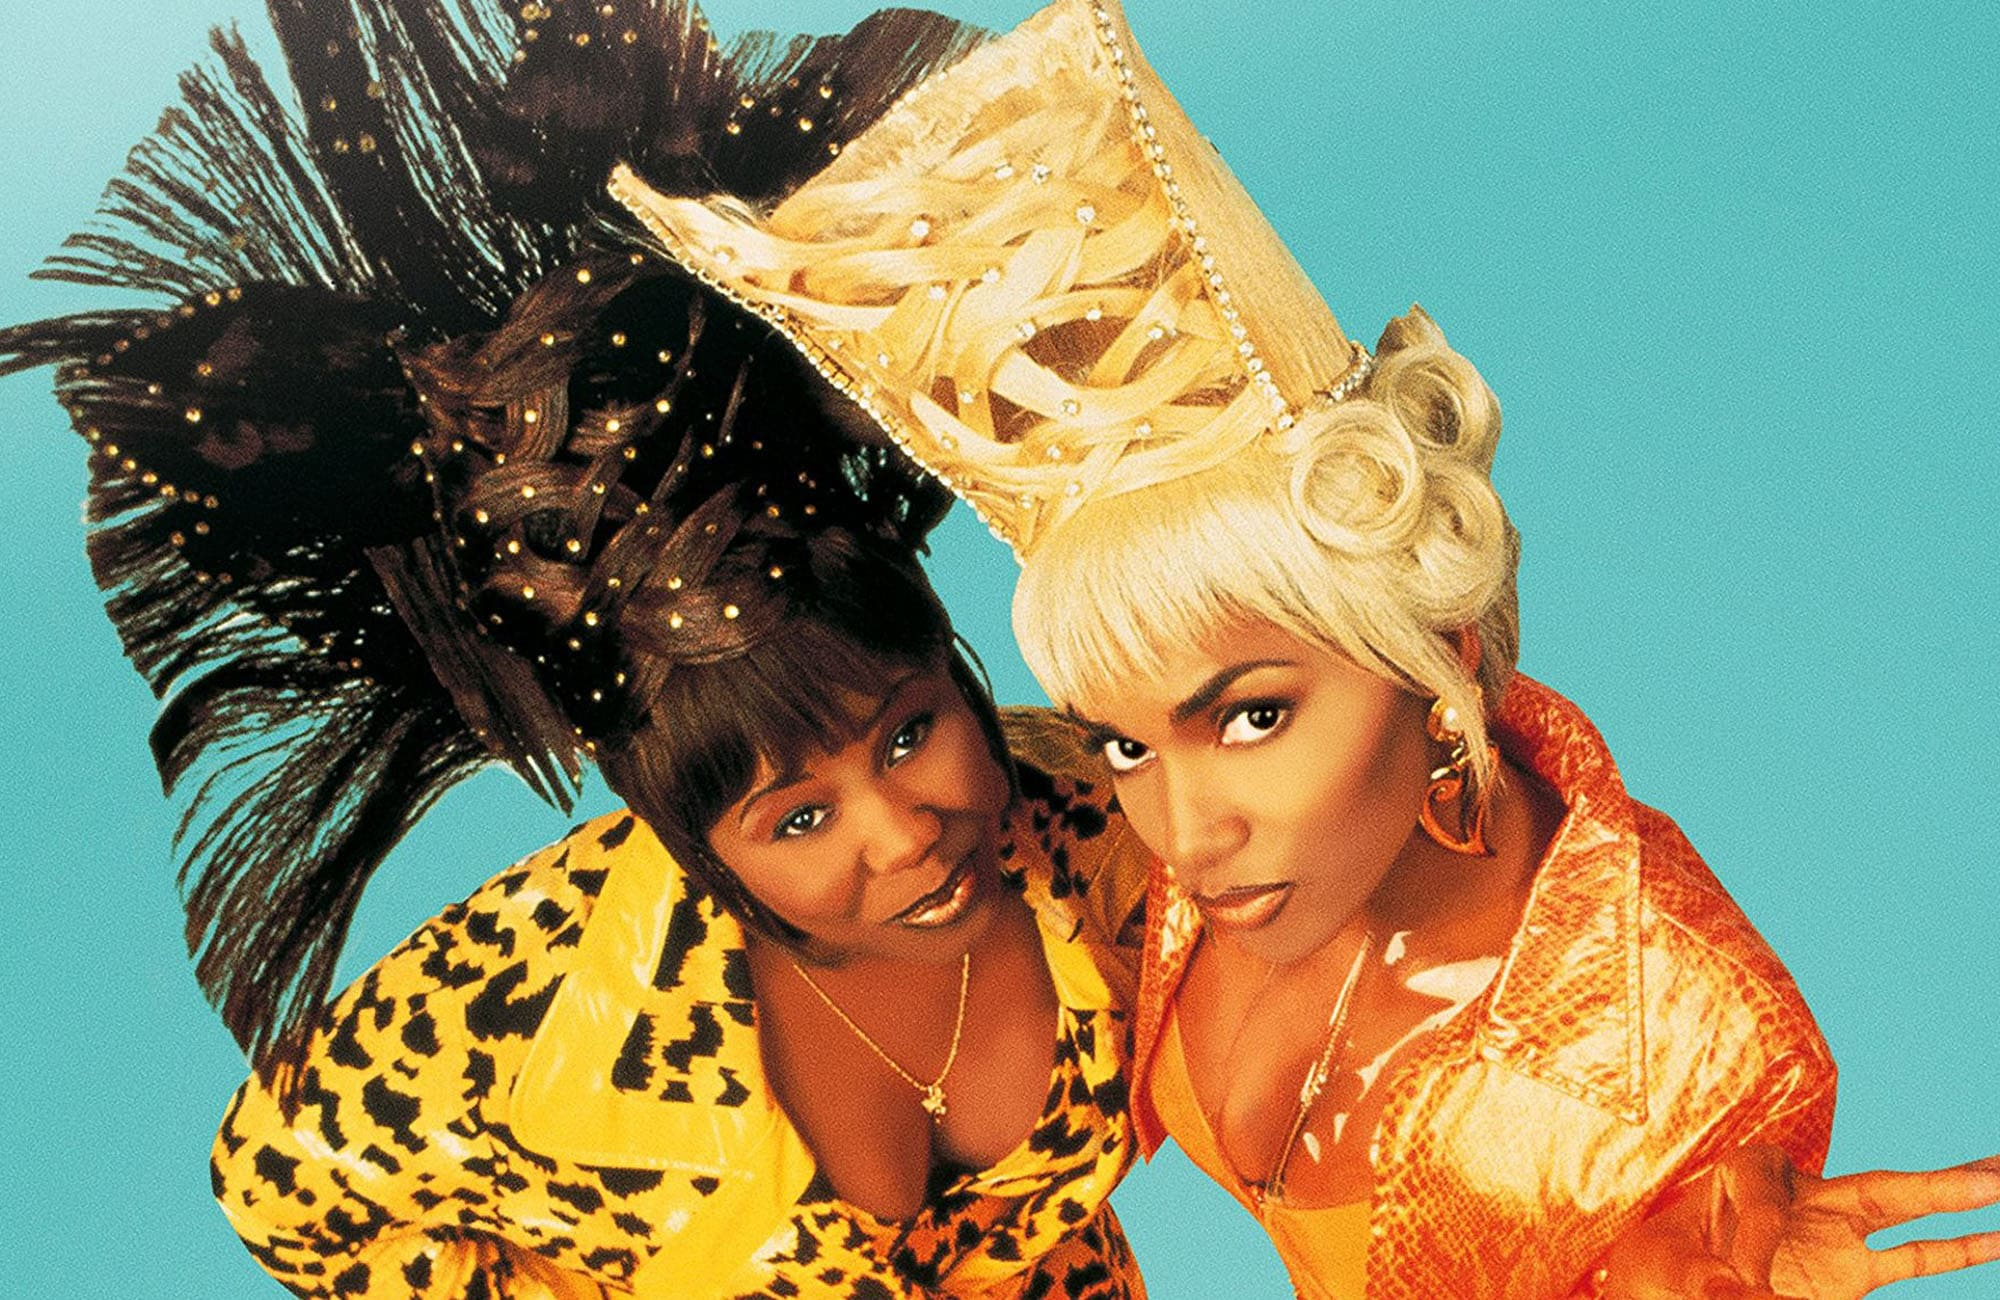 A promotional image for the film BAPS with Natalie Deselle-Reid and Halle Berry dressed in orange, with over the top hairstyles looking up at the camera.